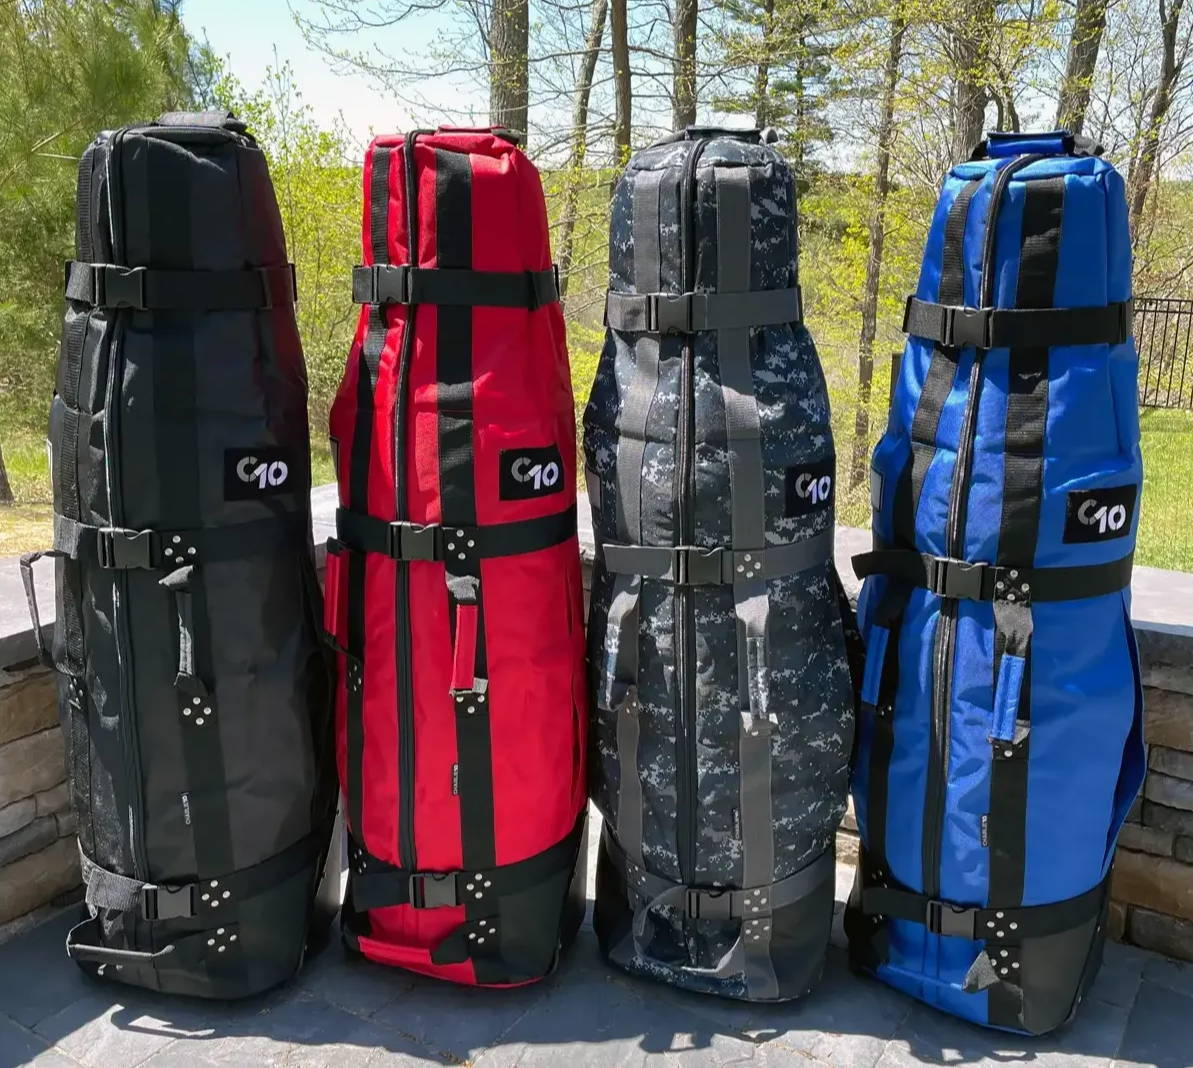 All four CHARLIE10 golf travel bags outdoors